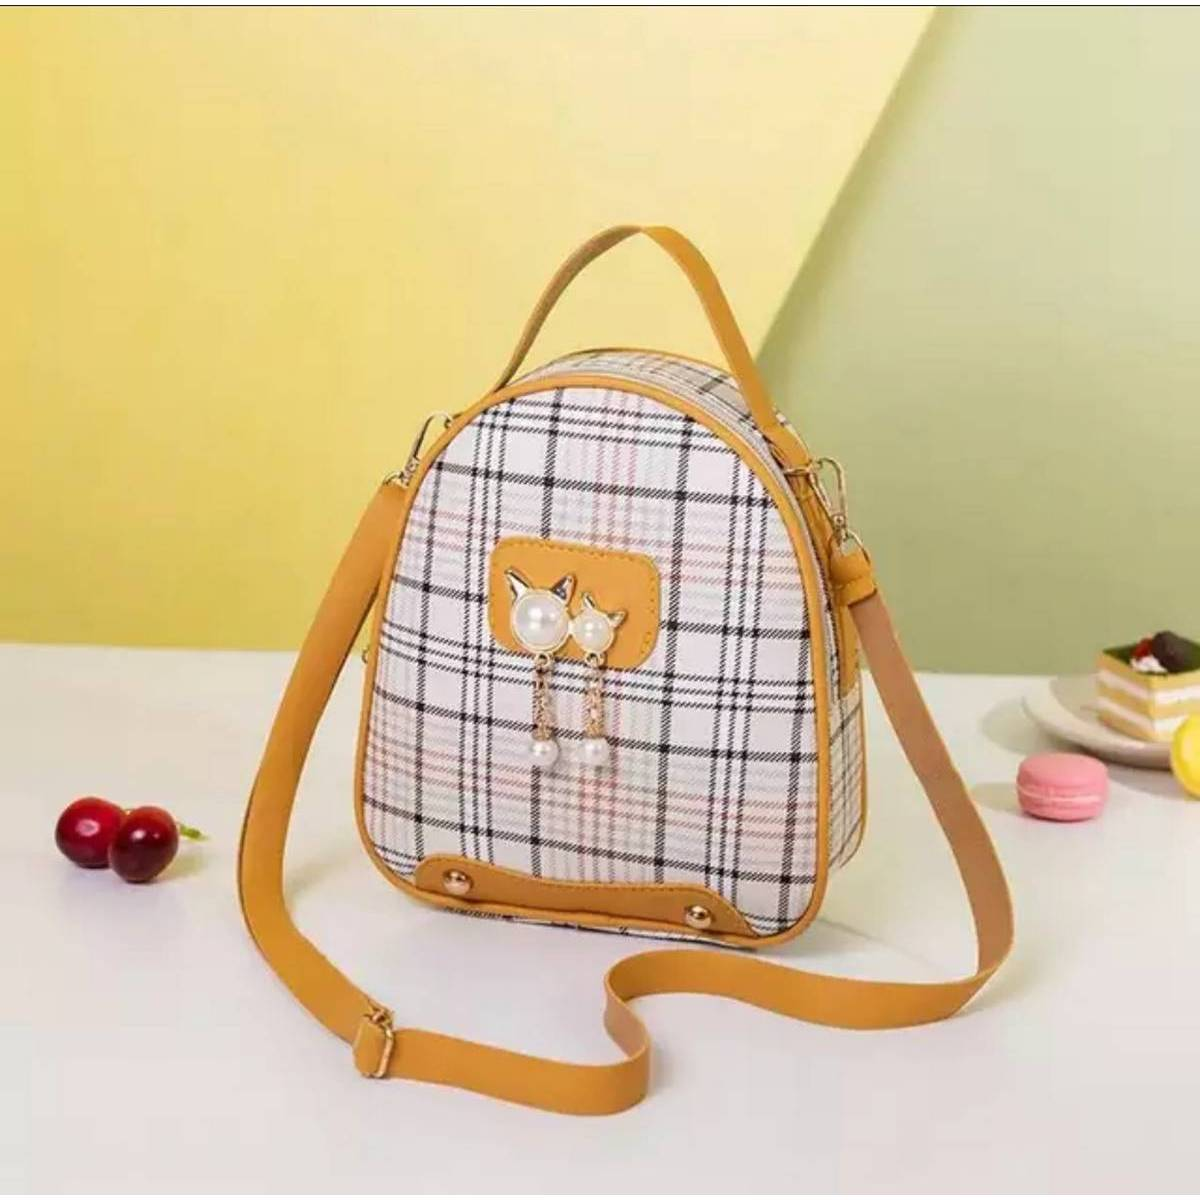 3 Style Use Check Pu Leather Material Bag for Stylish Girls (Backpack+Side Shoulder+Hand Carry)